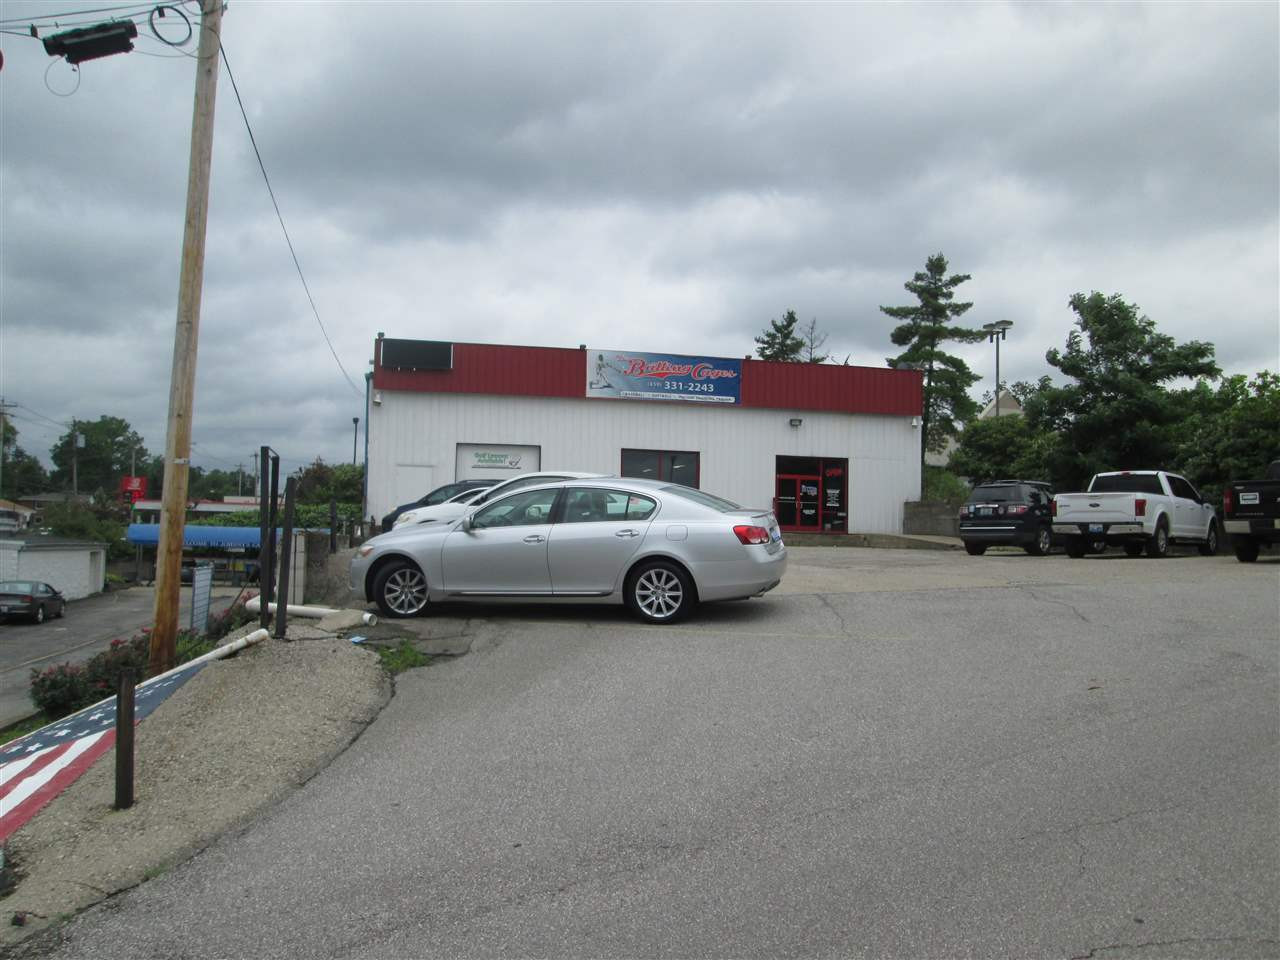 Photo 2 for 3152 1/2 Dixie Highway Erlanger, KY 41018